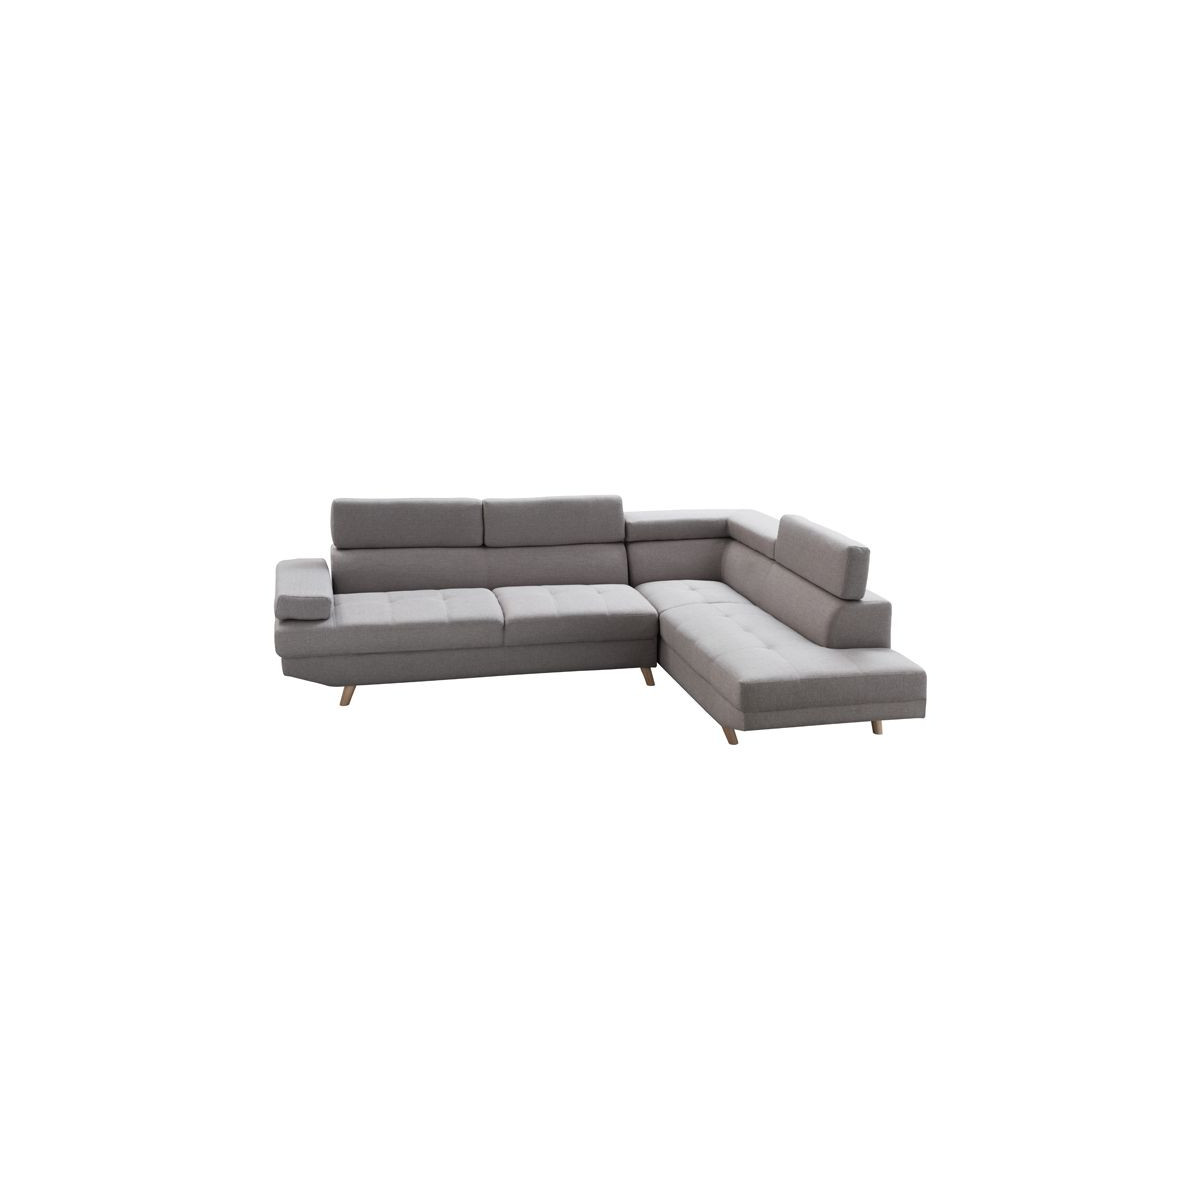 style scandinave gris clair